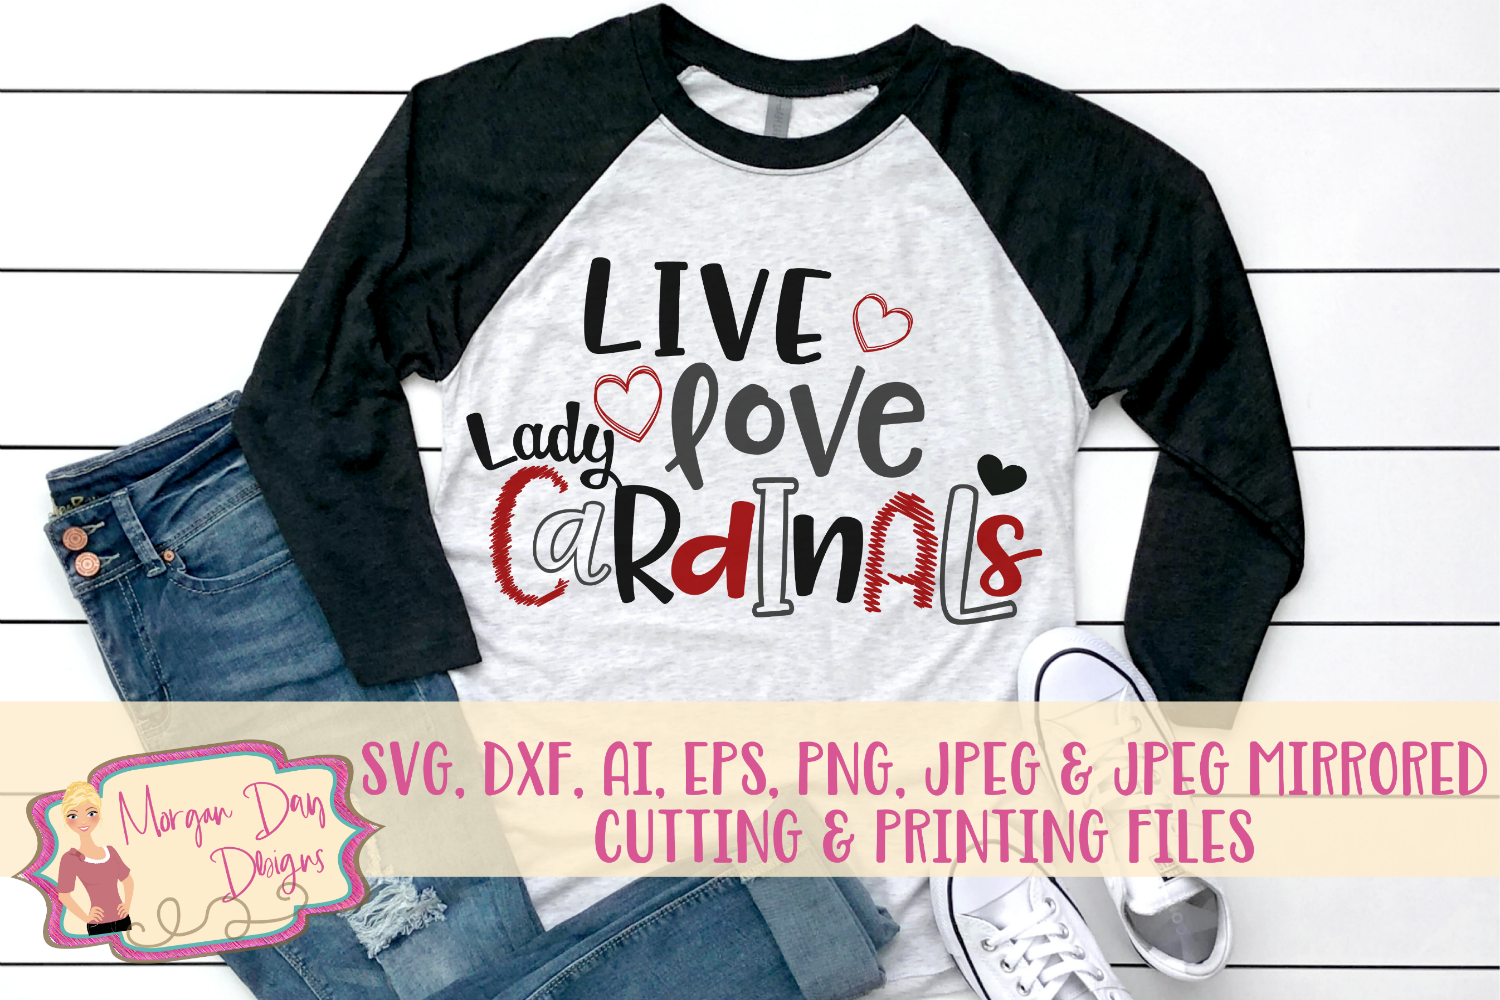 Live Love Lady Cardinals SVG, DXF, AI, EPS, PNG, JPEG example image 1